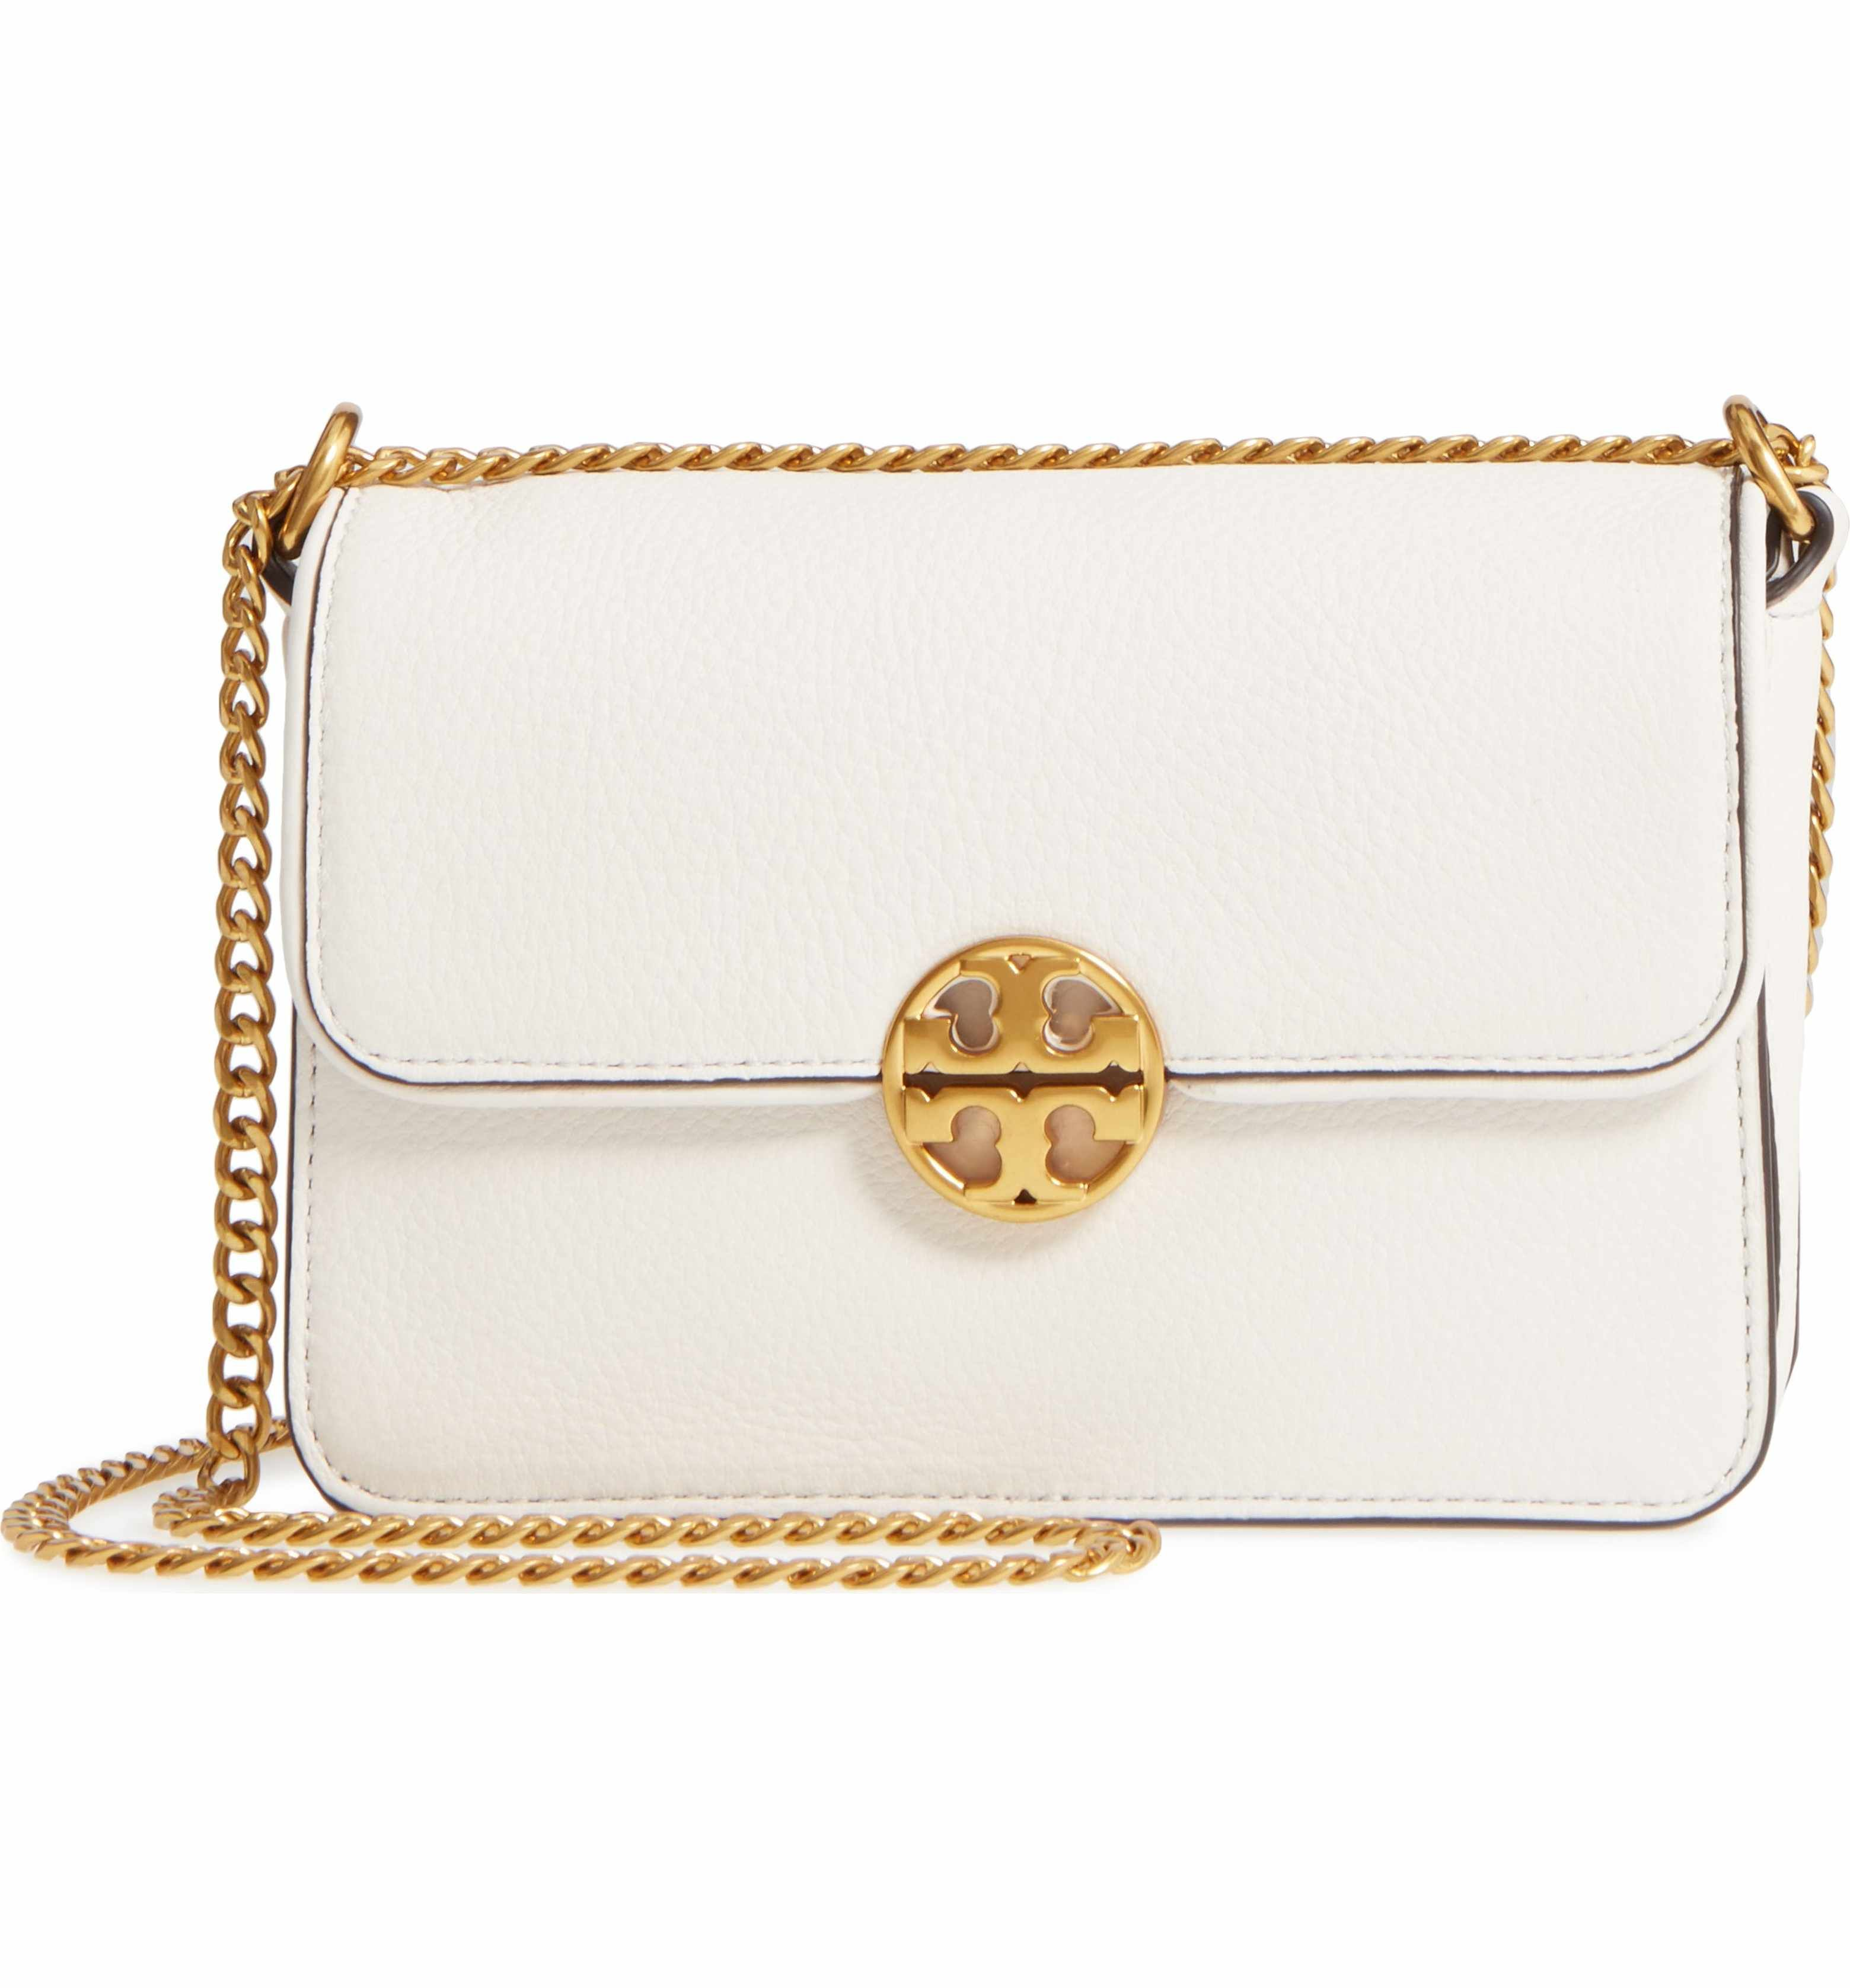 d561b3704 Tory Burch Mini Chelsea Leather Convertible Crossbody Bag | Bags in ...